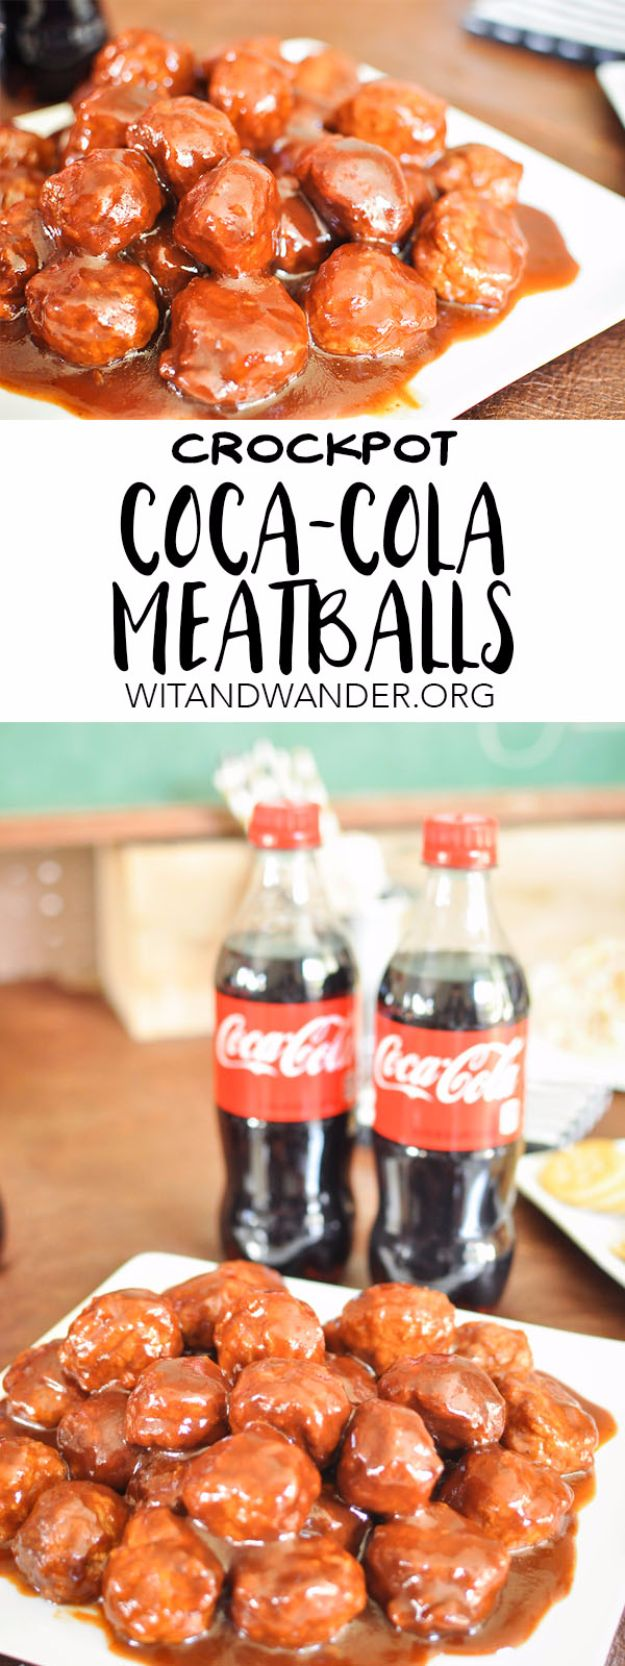 Best Coca Cola Recipes - Crockpot Coca Cola Meatballs - Make Awesome Coke Chicken, Coca Cola Cake, Meatballs, Sodas, Drinks, Sweets, Dinners, Meat, Slow Cooker and Recipe Ideas #cocacola #recipes #desserts